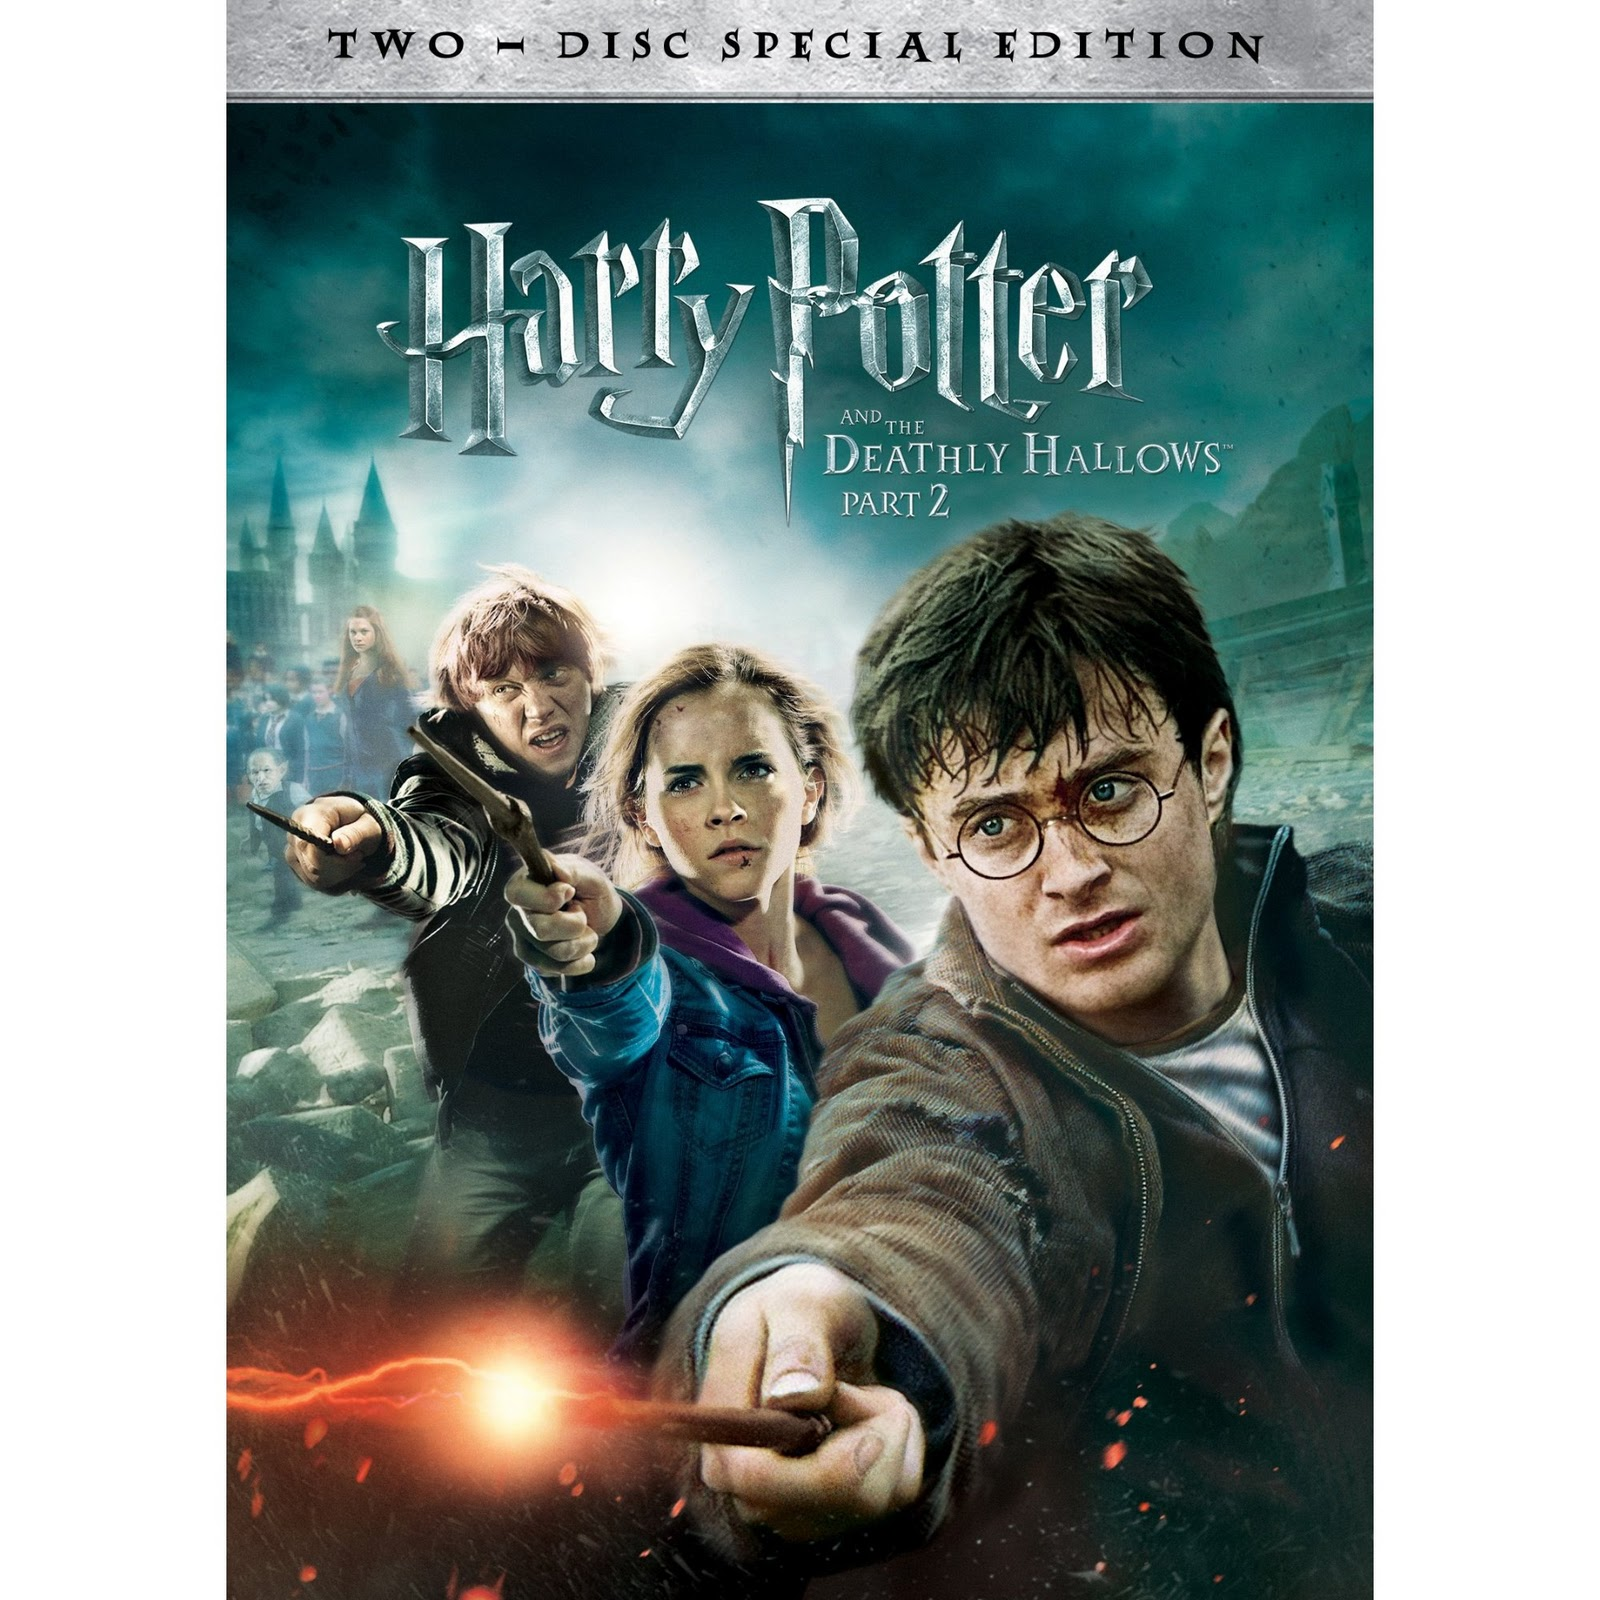 Primeira Mao Attconfira As Capas Americanas De Harry Potter E As Reliquias Da Morte Parte Ii on oscar 2012 melhor filme